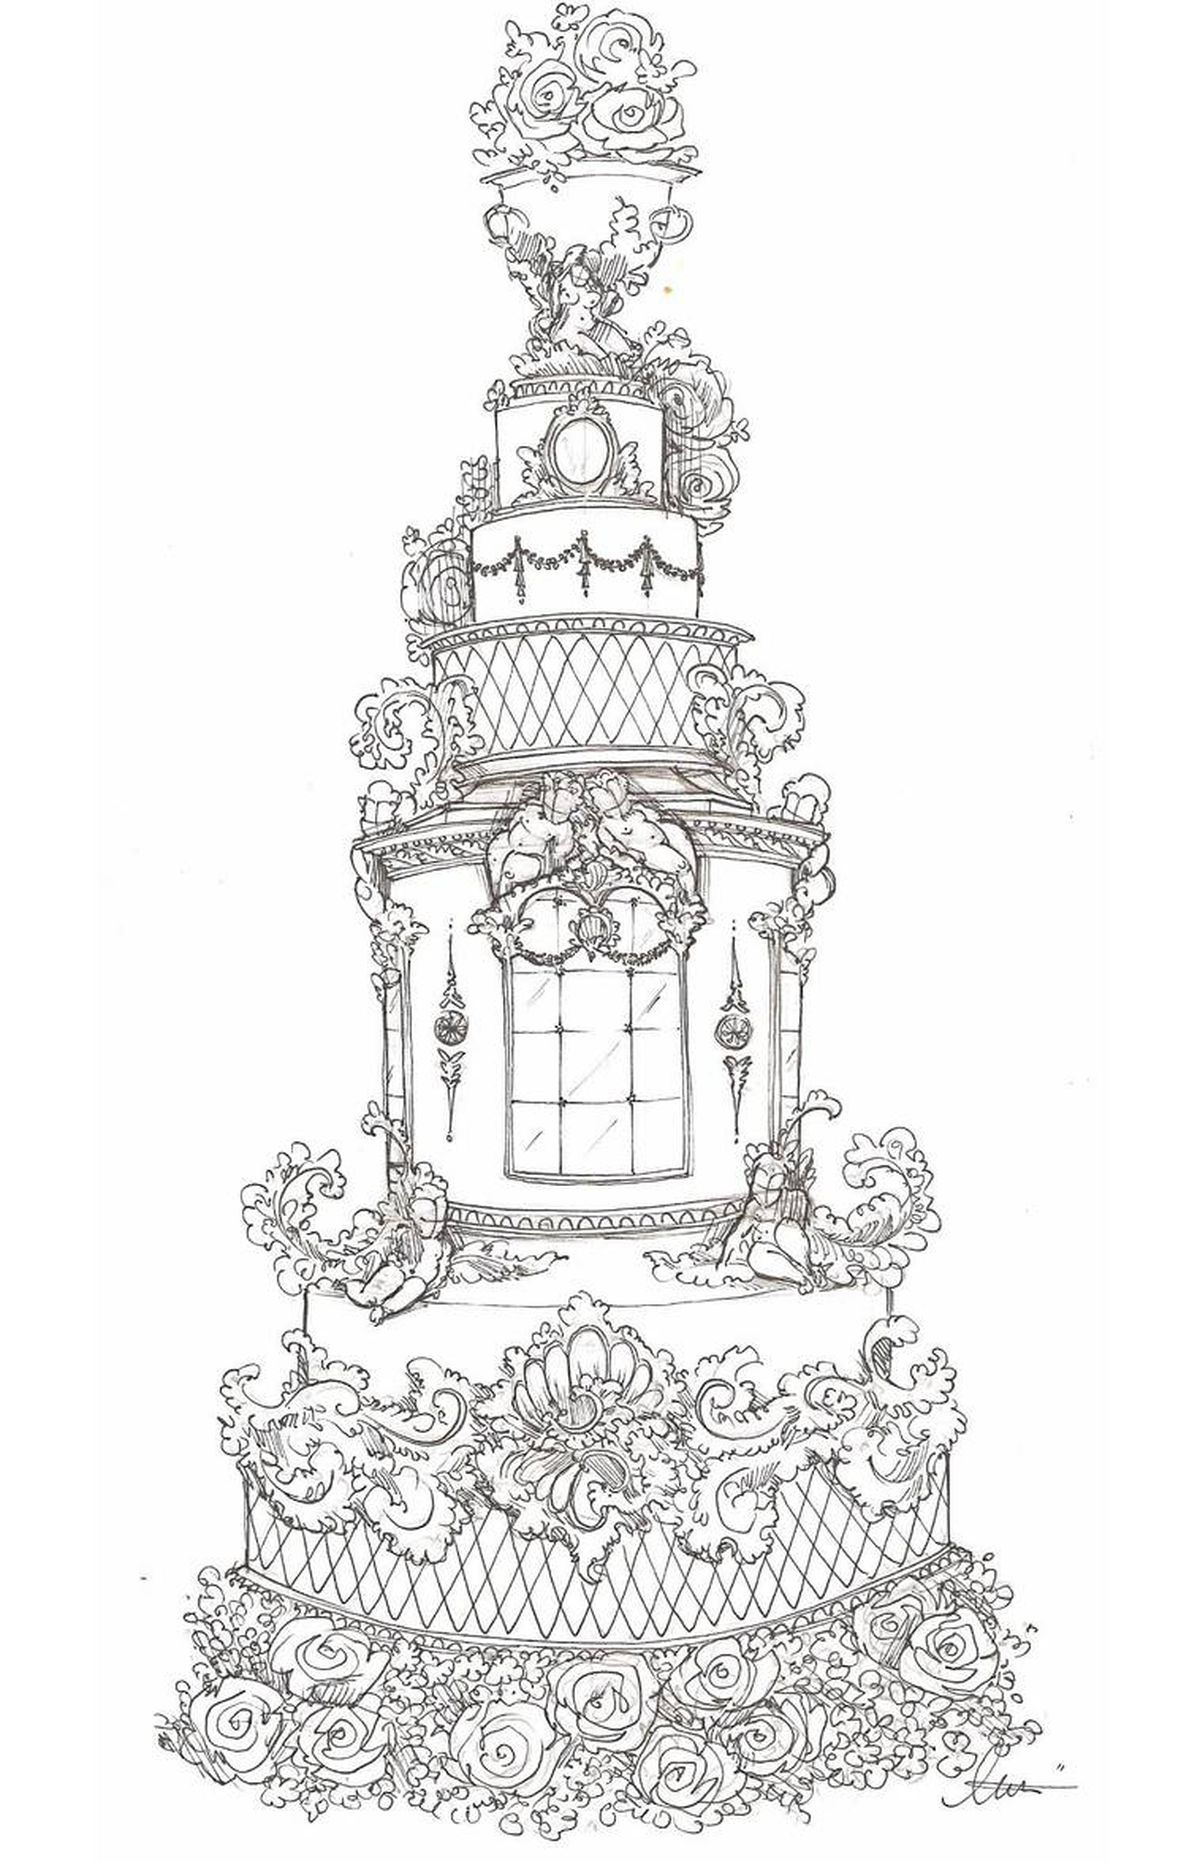 """Alexandria Pellegrino of Cake Opera Co., Toronto This royal wedding cake was inspired by a room styled in the Belle Epoque period in Buckingham Palace. It would be made in a very pale, moss-green fondant and the bas relief architectural mouldings would be created from gum paste and painted in 24-karat edible gold. The urn topper, the feminine figure at its base and the cherubs throughout the cake would be sculpted by hand from gum paste and applied to the cake using royal icing. The centre tier depicts a salon-style """"mirror"""" made from melted sugar poured and cast as tiles. Moss-green fresh flowers, including green roses, hydrangeas and chrysanthemums, would cover the entire base and cascade from the sugar topper. While Kate Middleton is clearly a fashion-forward woman, the cake still feels like a regal wedding cake."""